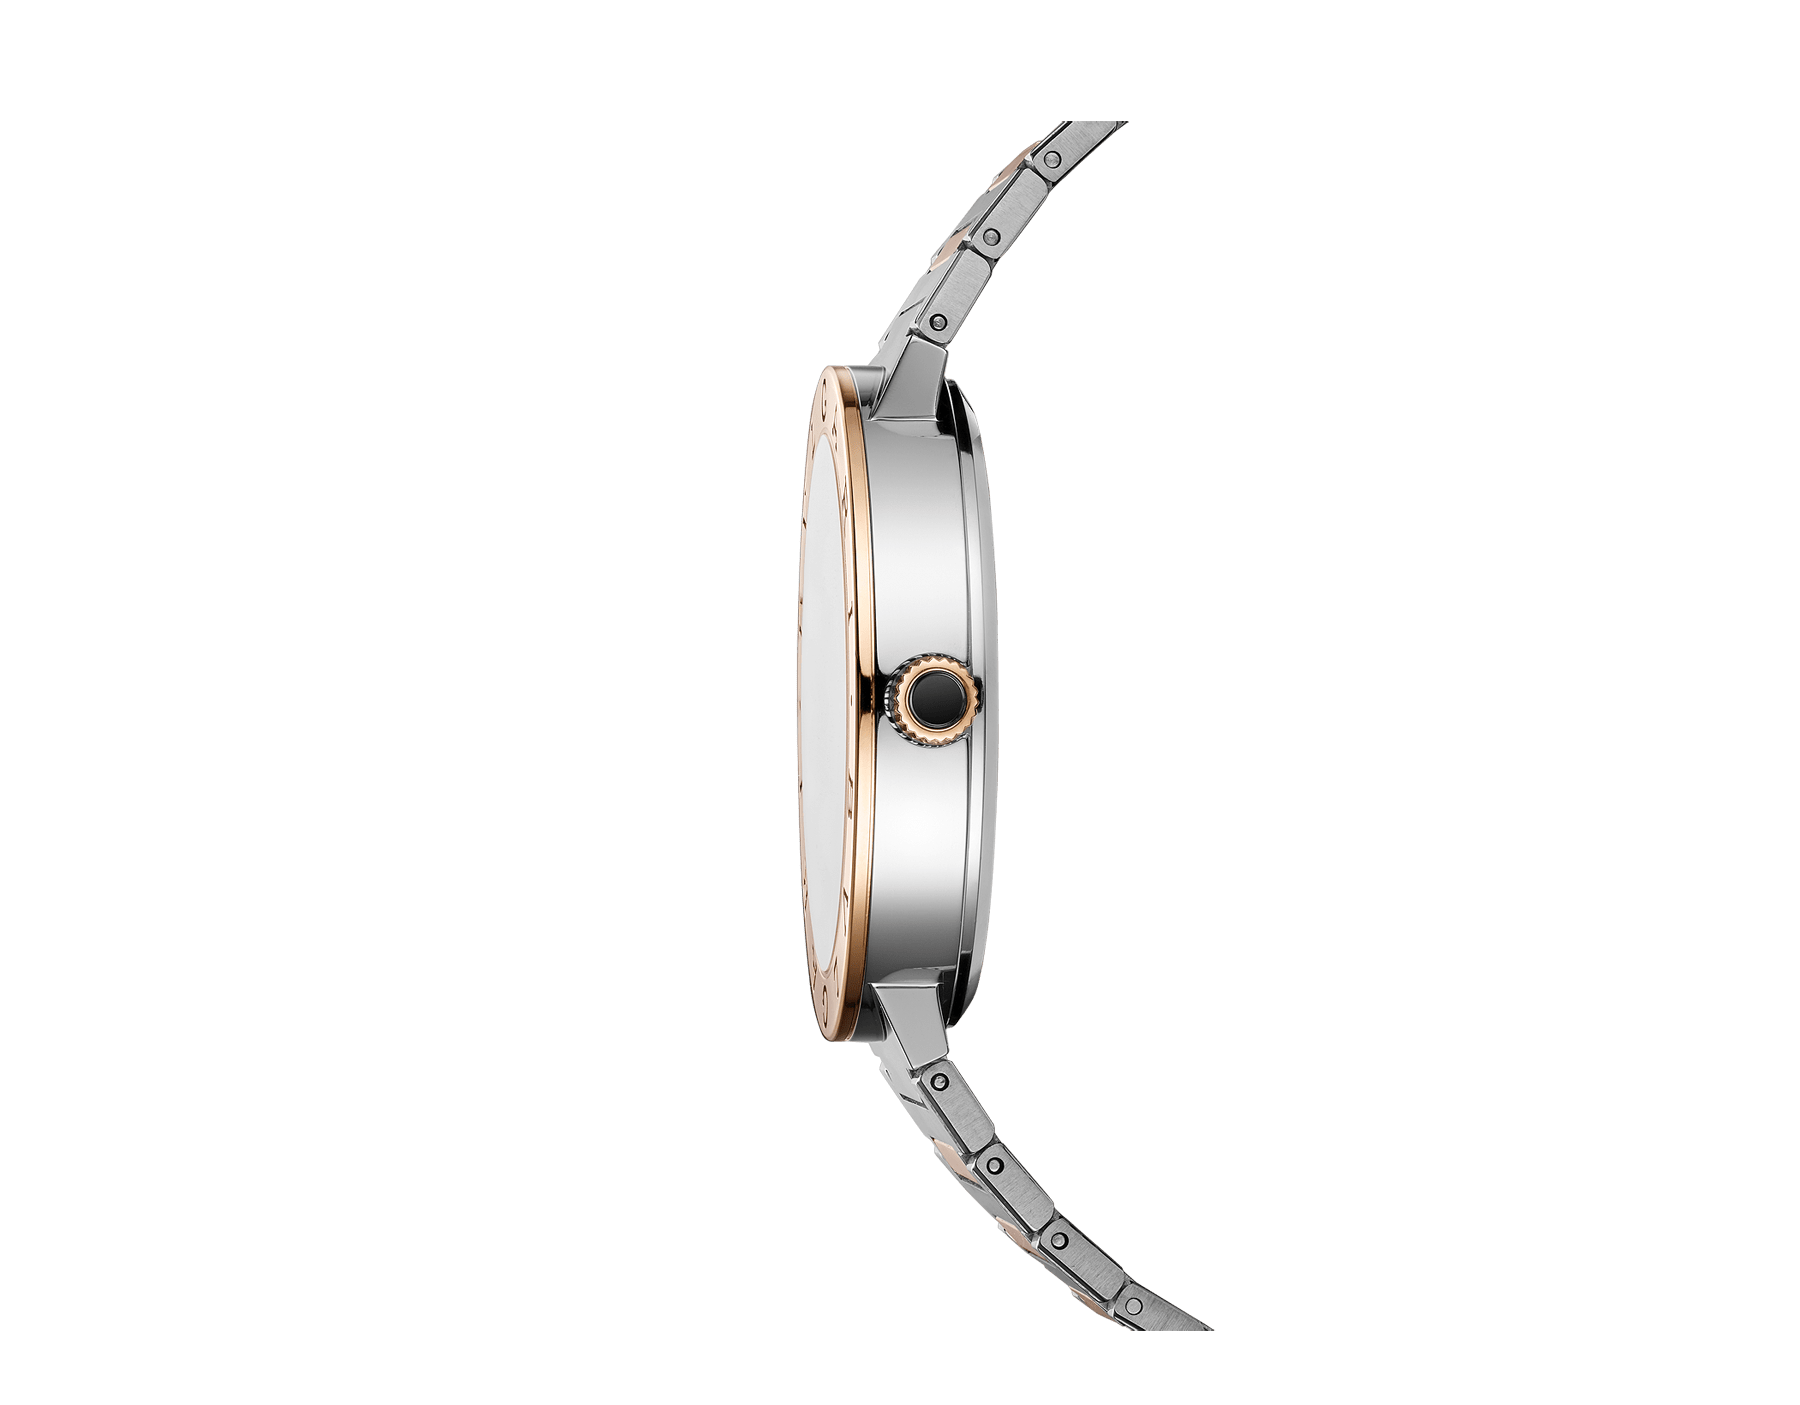 BVLGARI BVLGARI Solotempo watch with mechanical manufacture movement, automatic winding and date, stainless steel case, 18 kt rose gold bezel engraved with double logo, black dial and 18 kt rose gold and stainless steel bracelet 102930 image 2